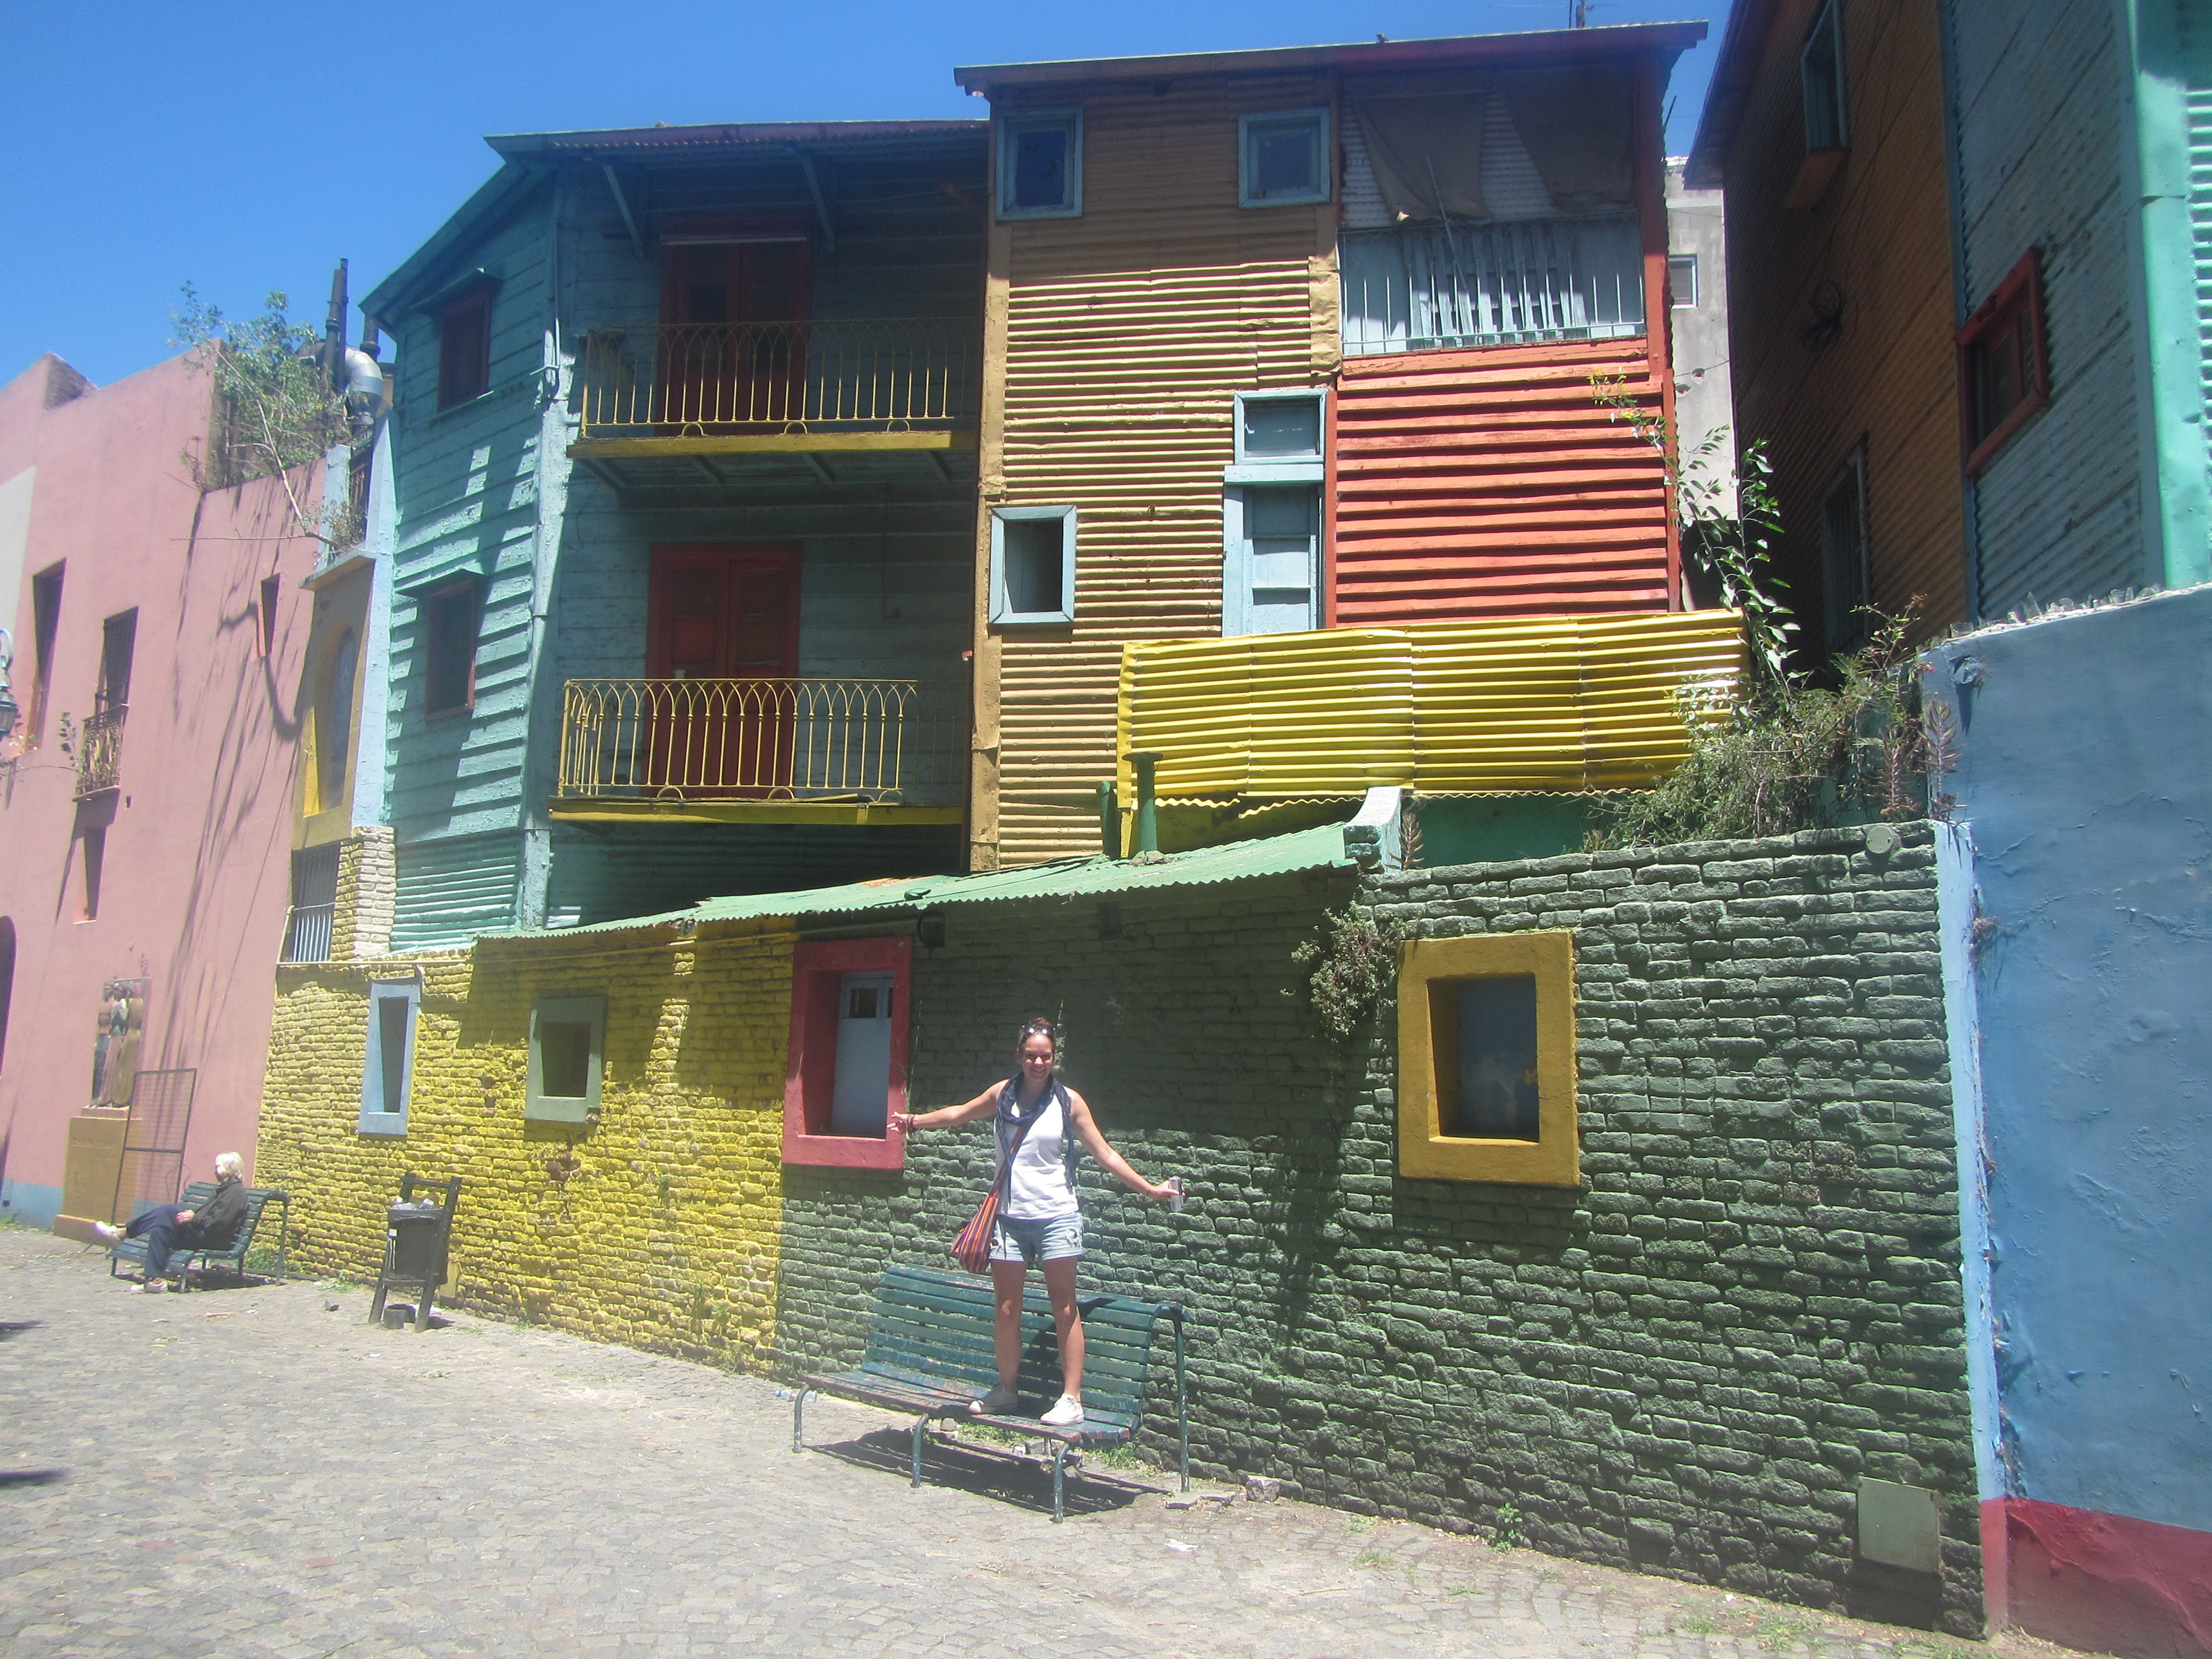 The colourful neighbourhood of La Boca, Buenos Aires